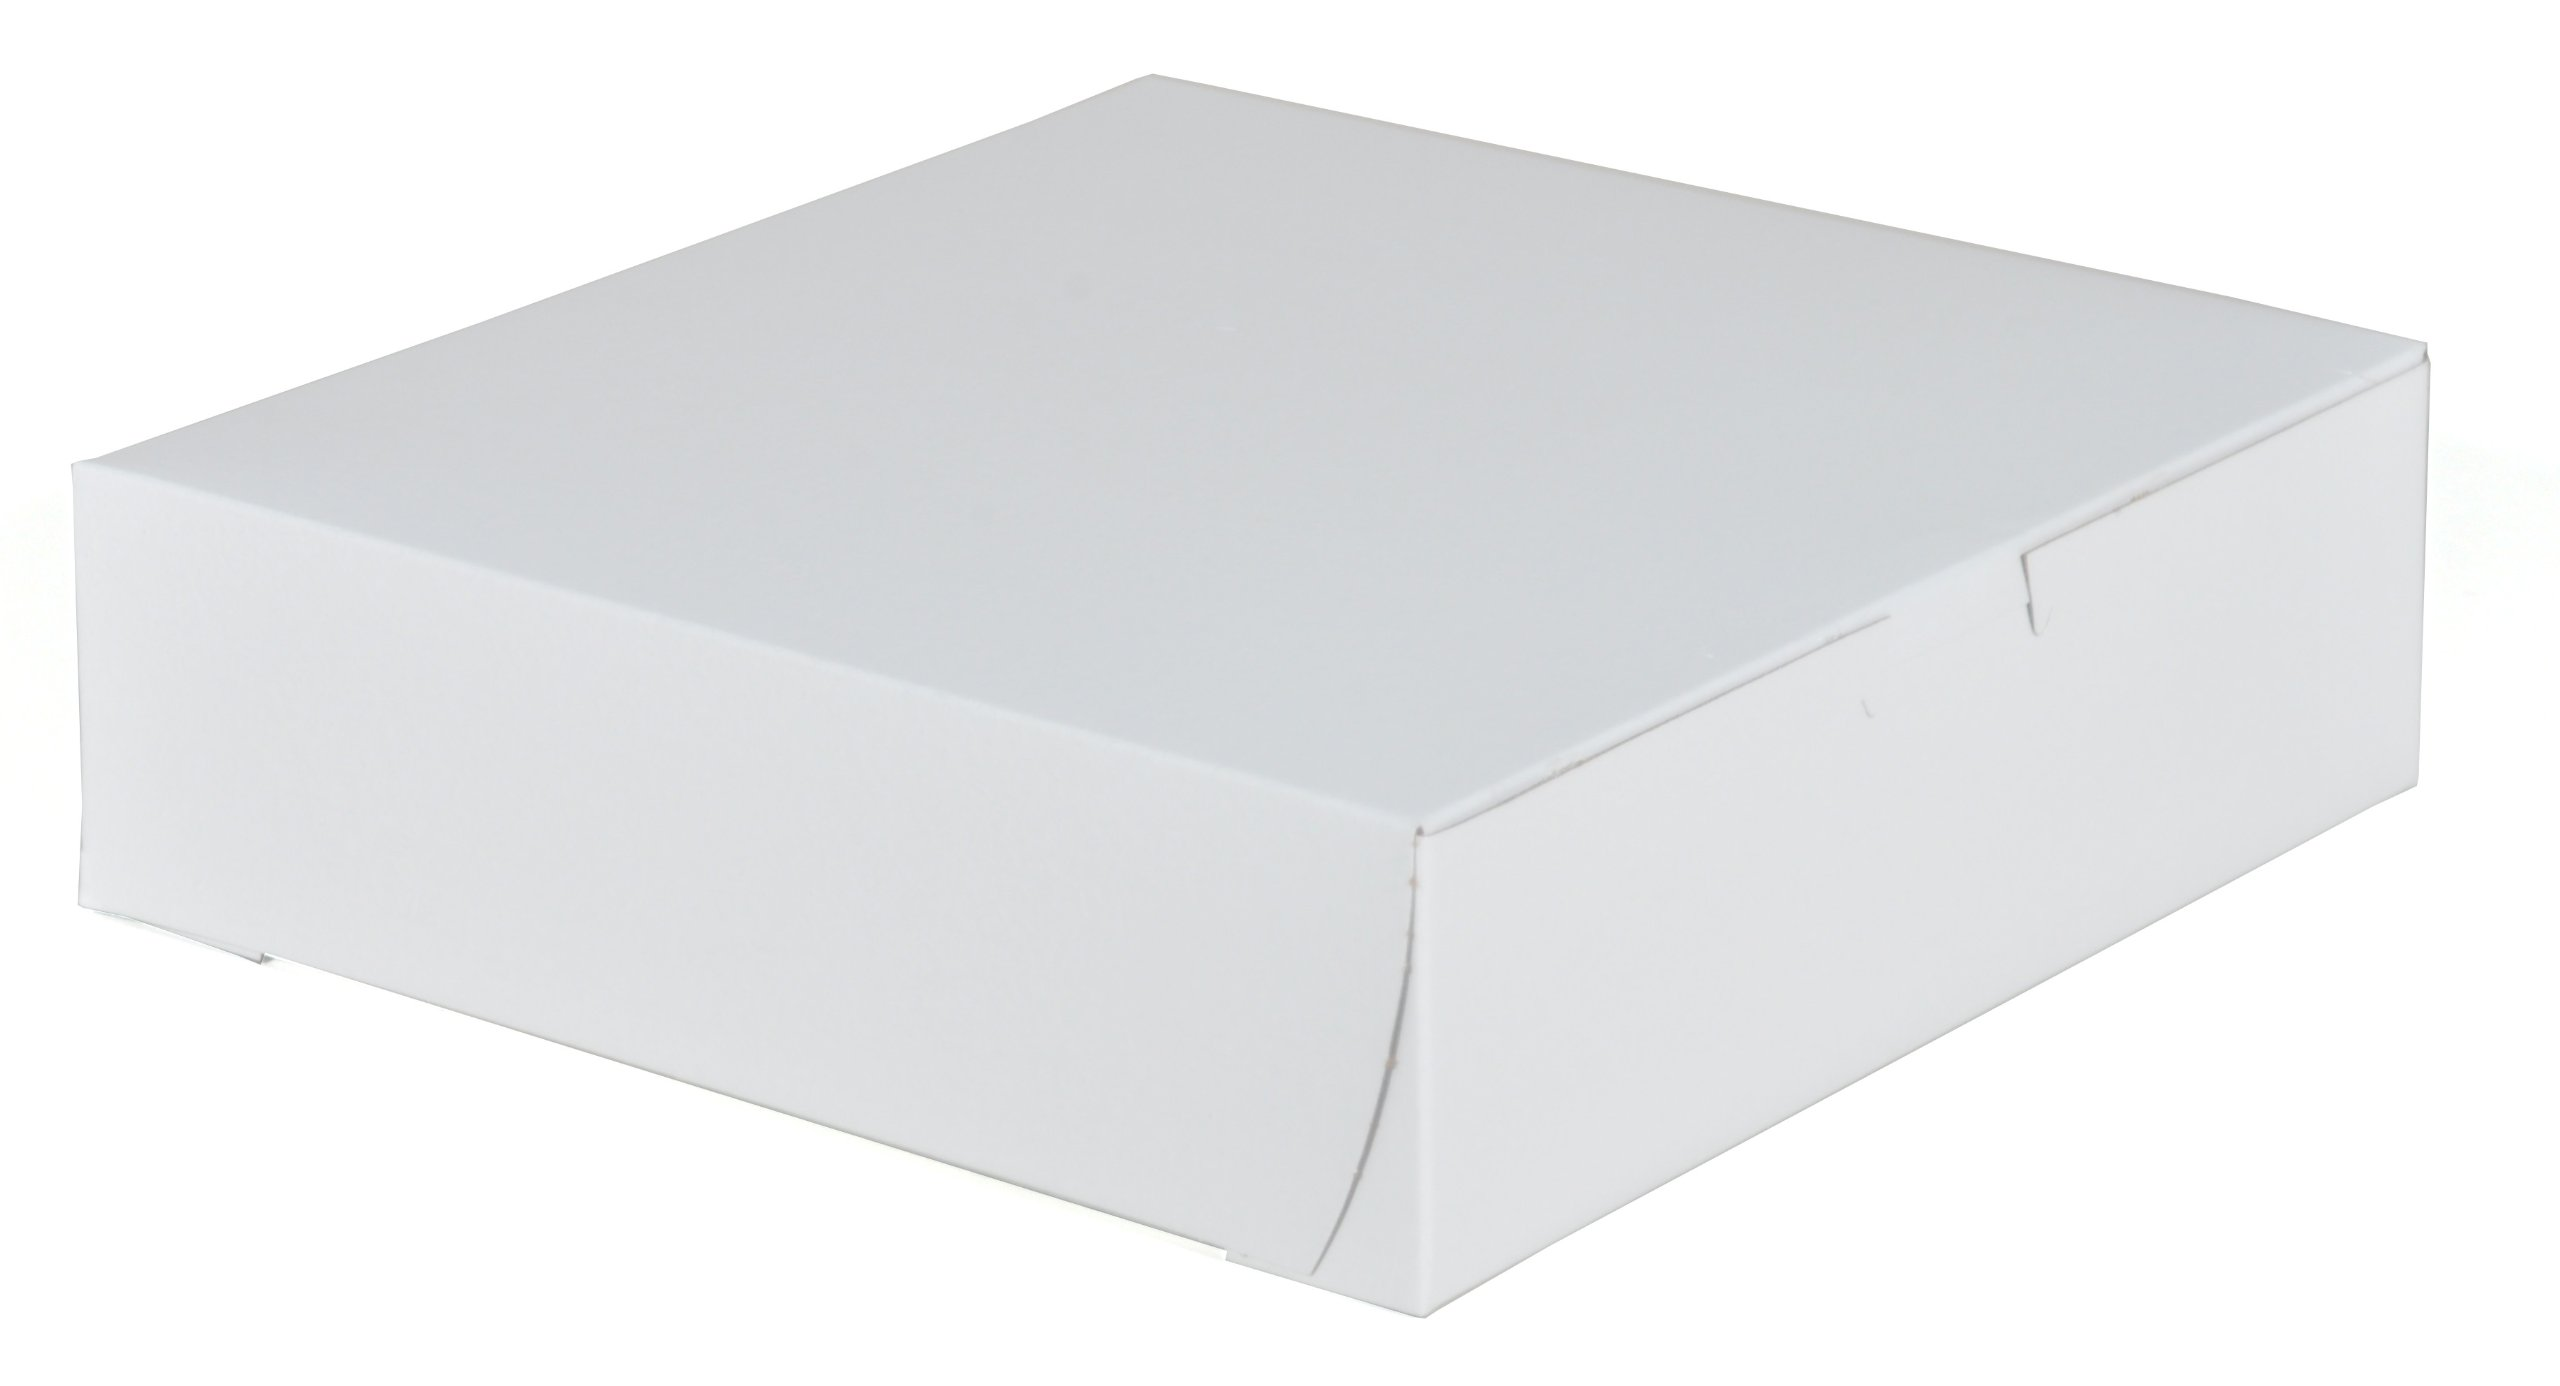 Southern Champion Tray 0953 Premium Clay-Coated Kraft Paperboard White Non-Window Lock Corner Bakery Box, 9'' Length x 9'' Width x 2.5'' Height (Case of 250)